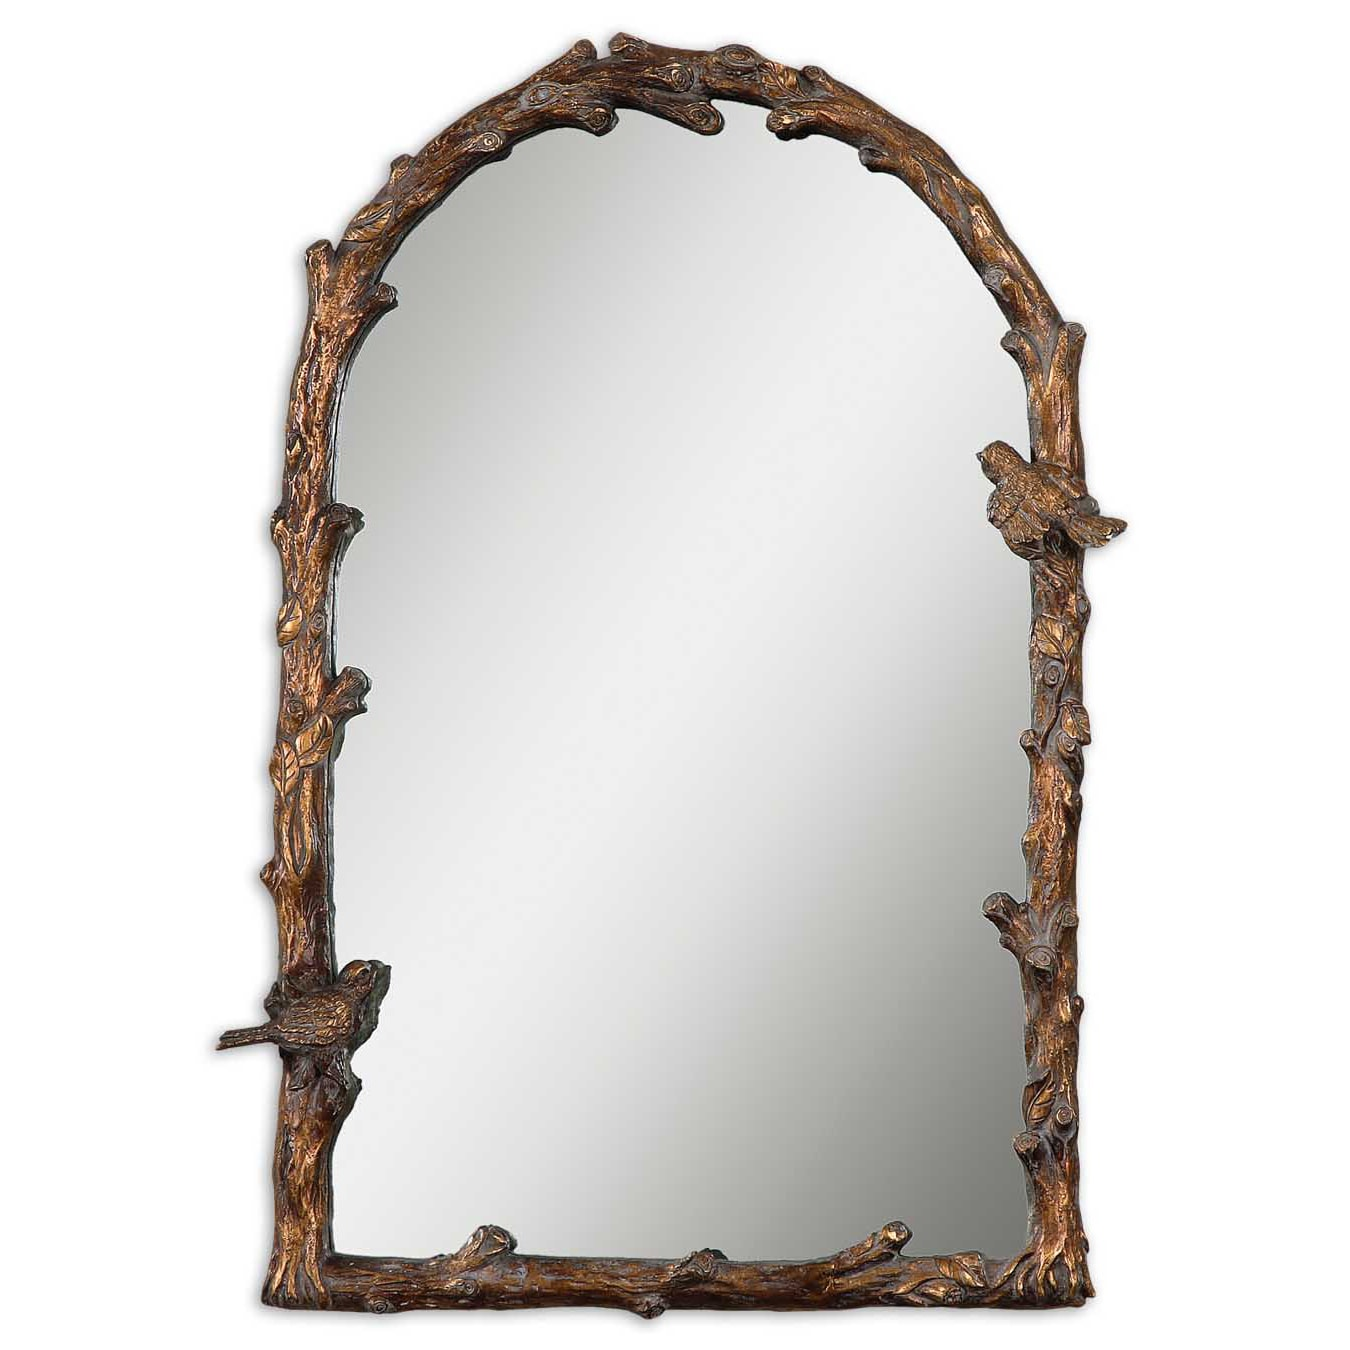 Uttermost paza antique gold branch framed arched mirror free uttermost paza antique gold branch framed arched mirror free shipping today overstock 15083964 jeuxipadfo Choice Image